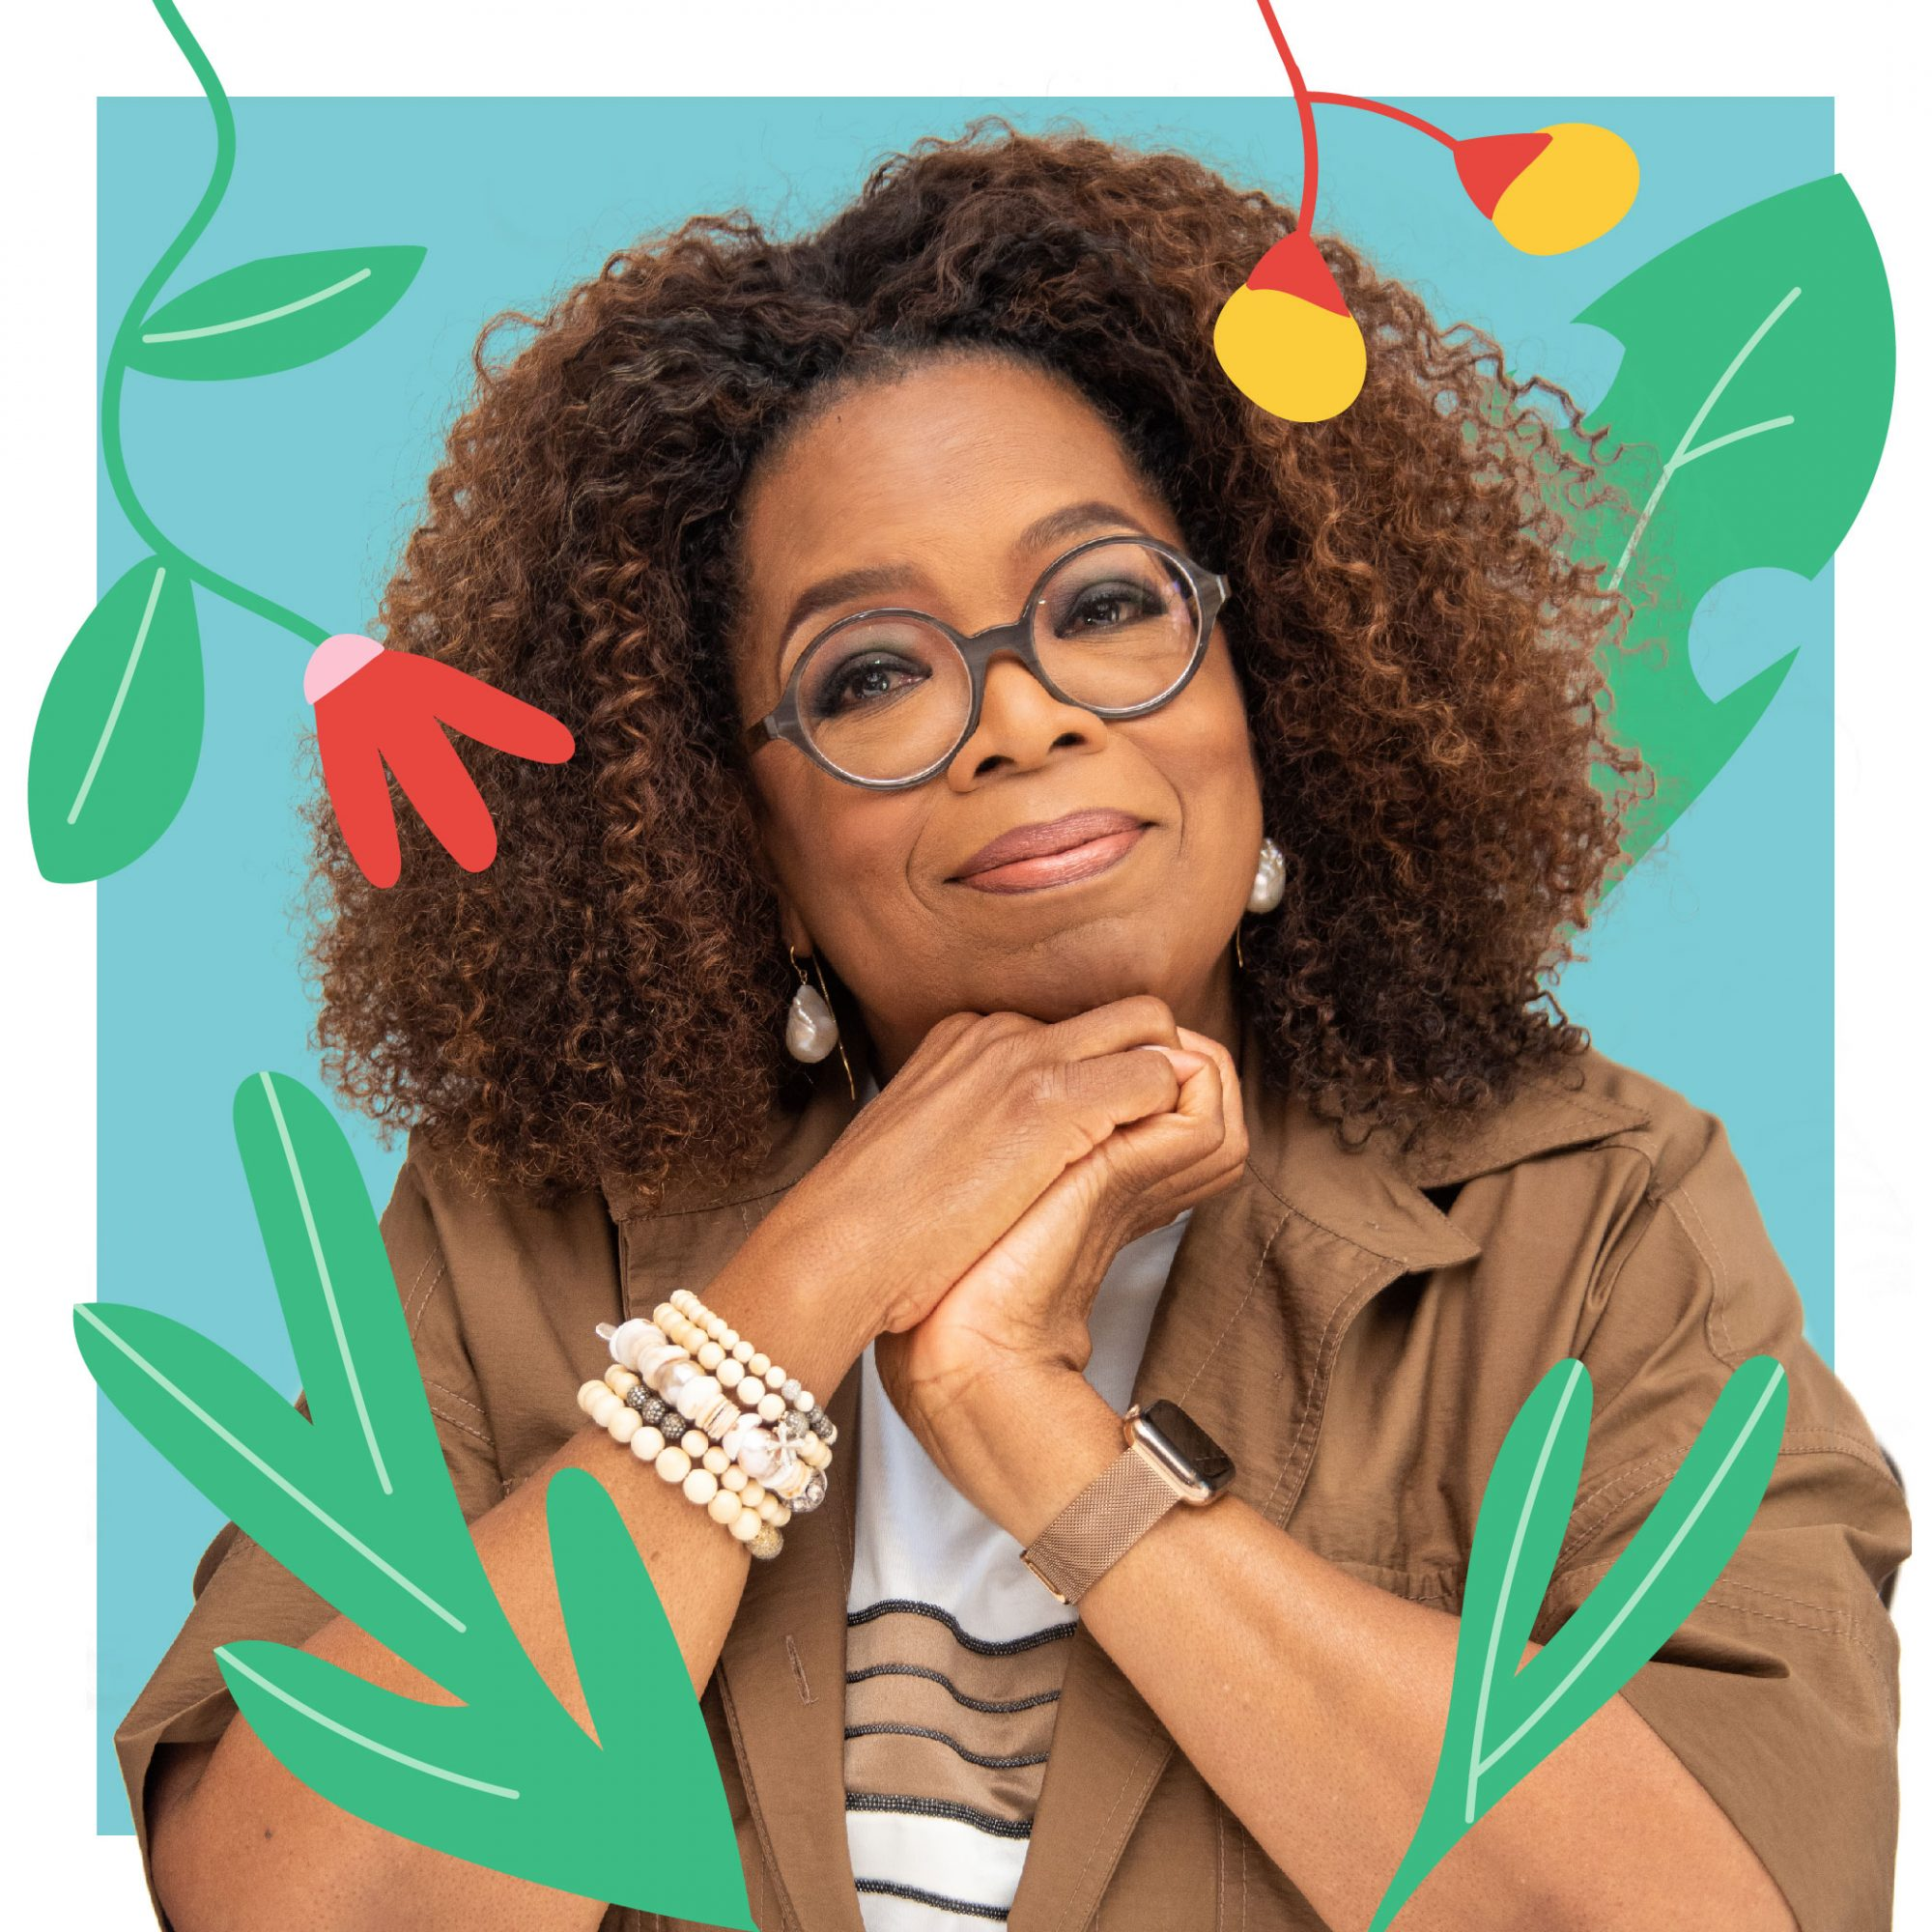 Real Simple Celebrities Who Practice Mindfulness: Oprah Winfrey